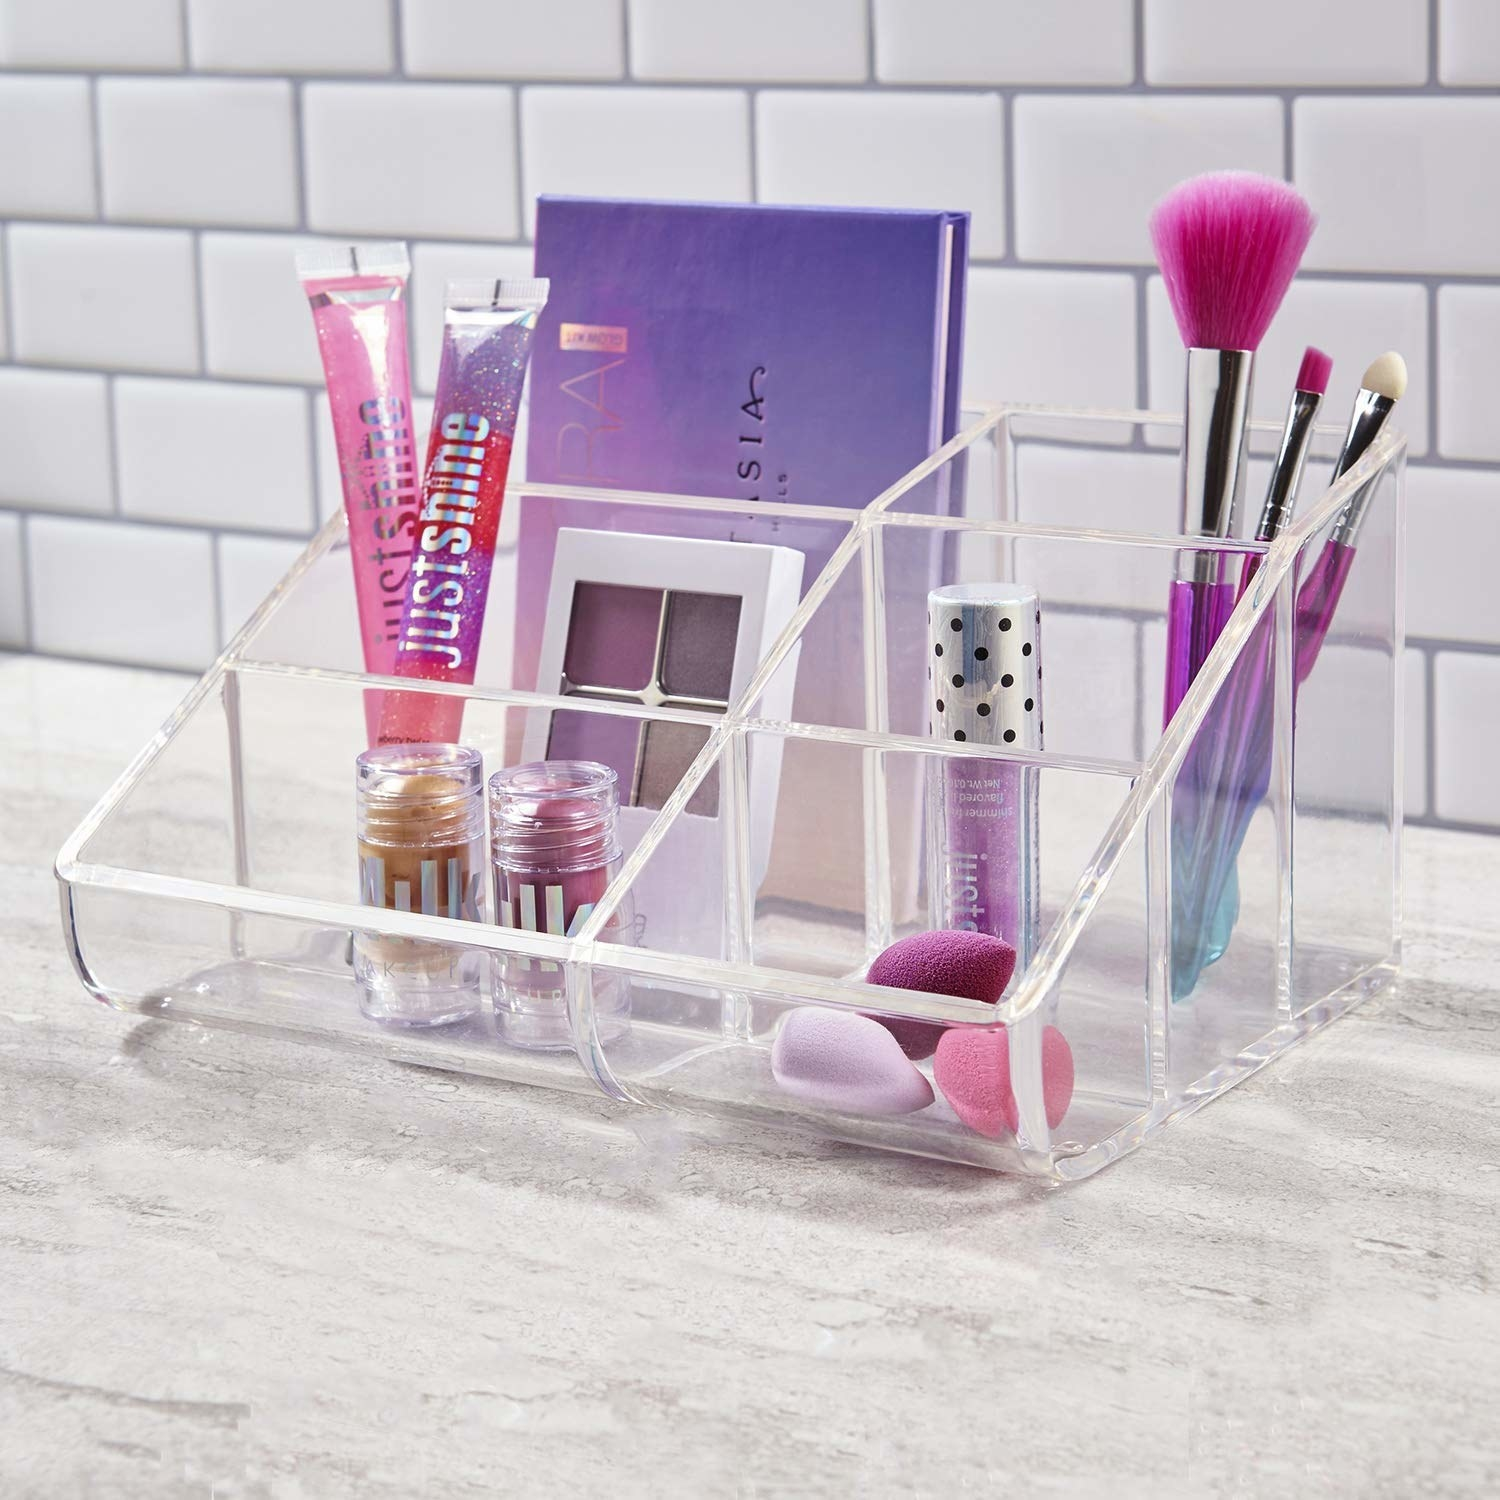 six-compartment open clear organizer, with taller options in back